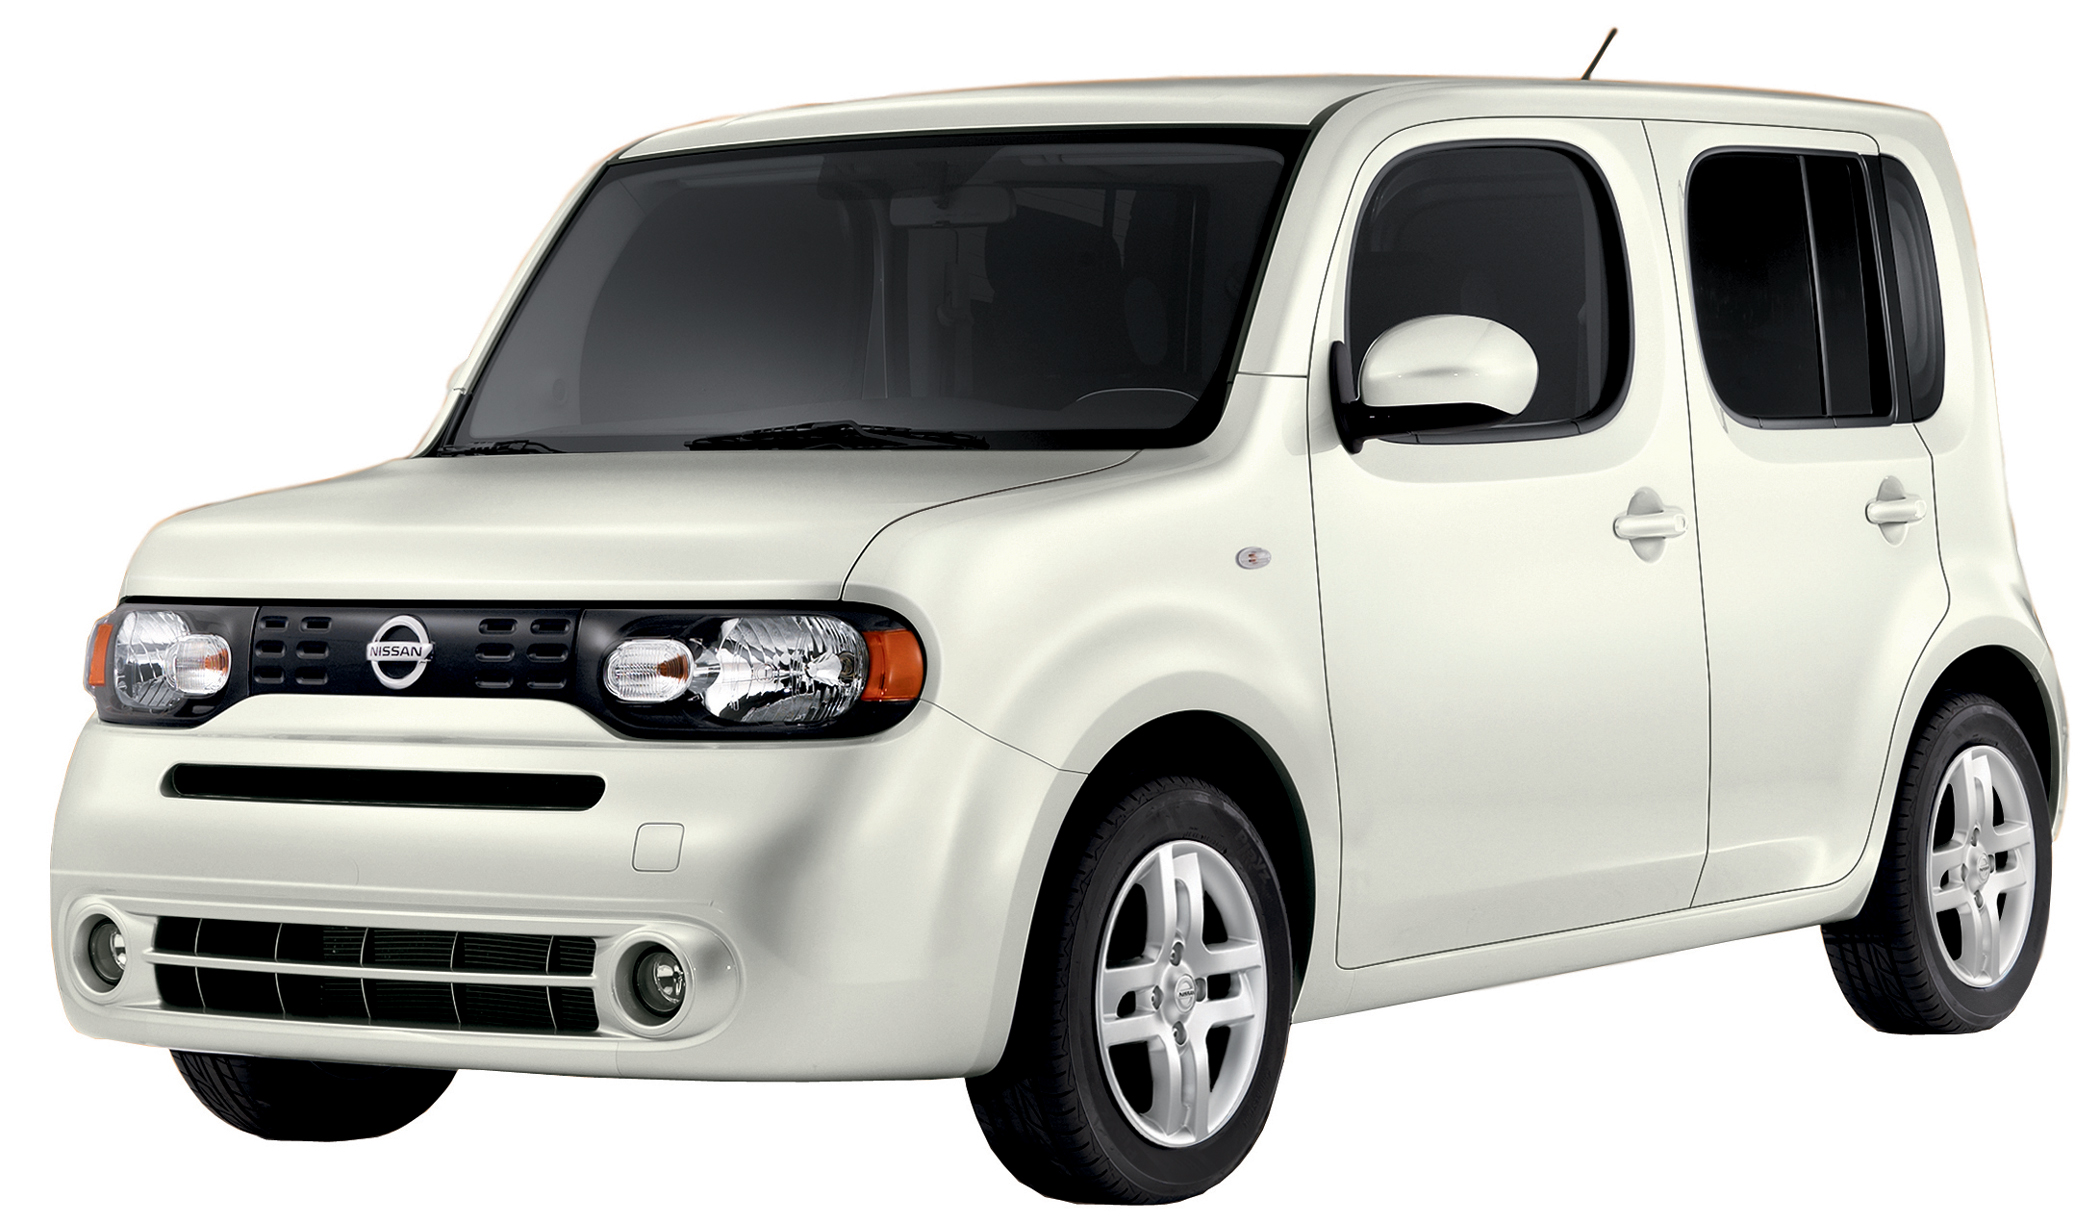 Nissan cube high level functionality in a quirky box bonus until the cube nissan didnt really have anything to counter hondas element or the boxy go kart compacts from toyotas scion division vanachro Image collections